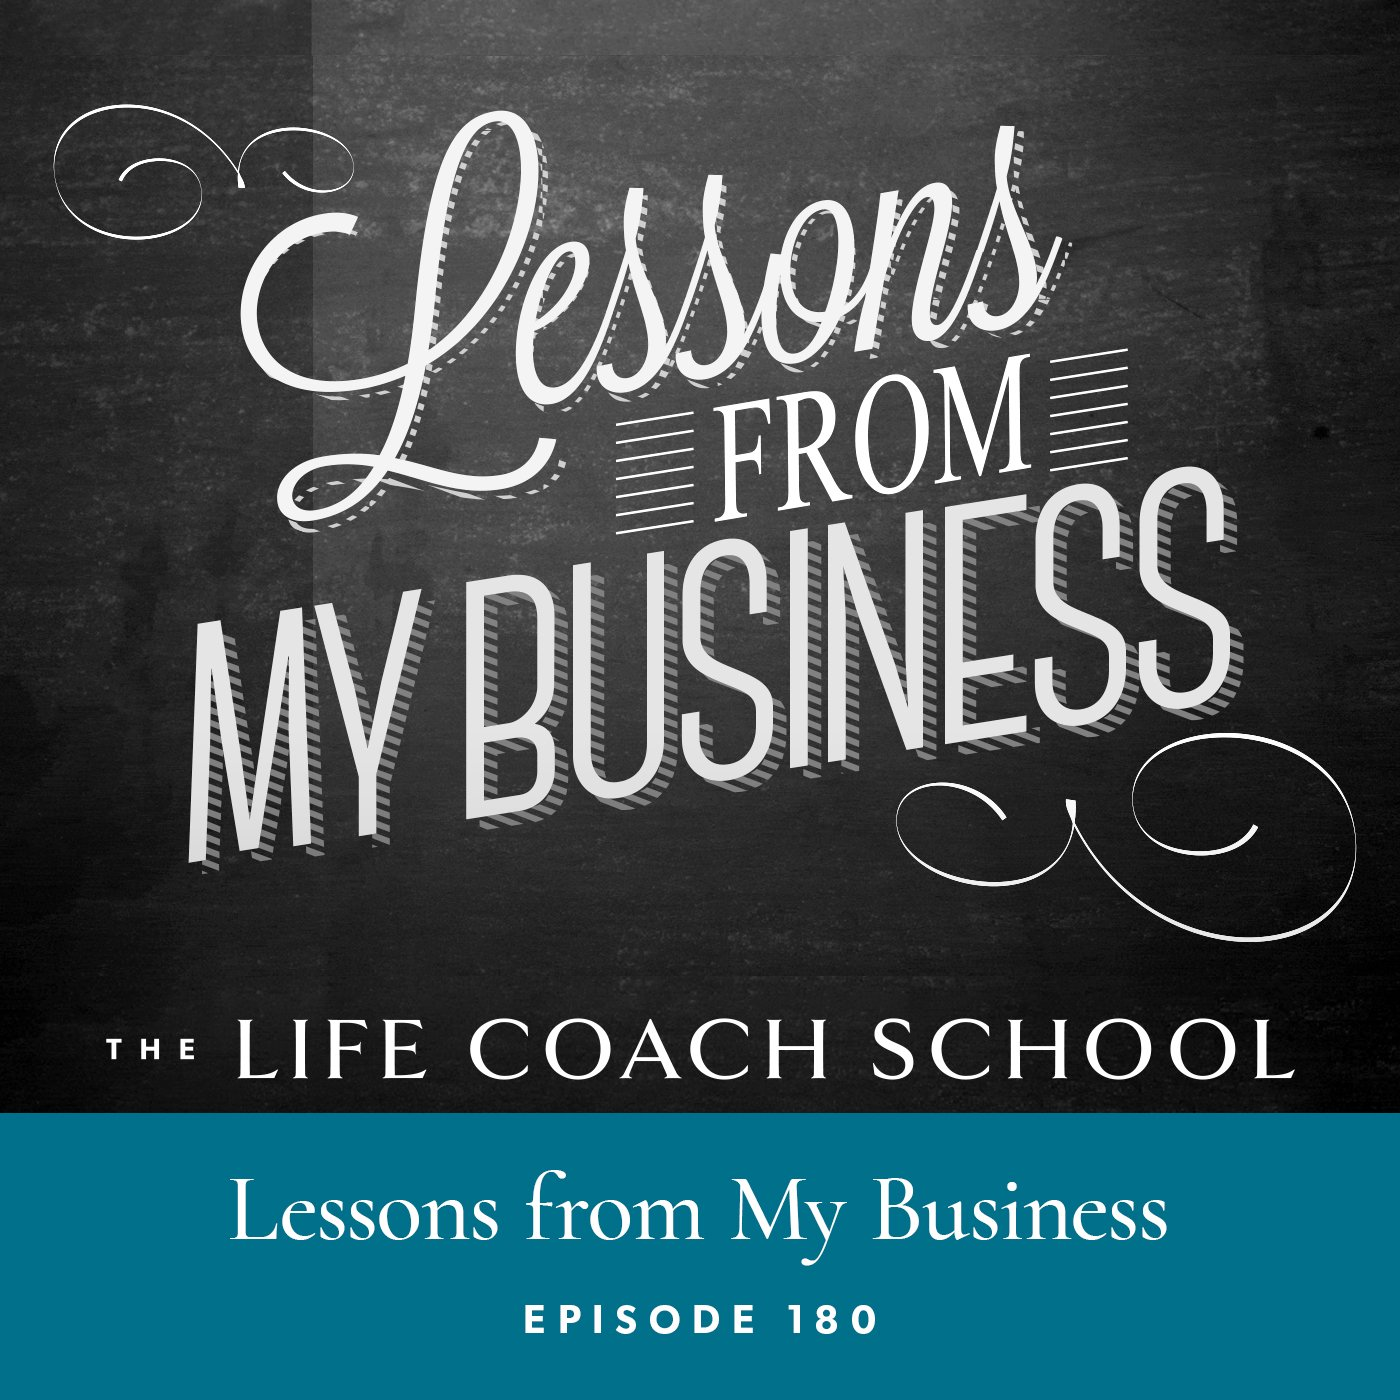 The Life Coach School Podcast with Brooke Castillo | Episode 180 | Lessons from My Business